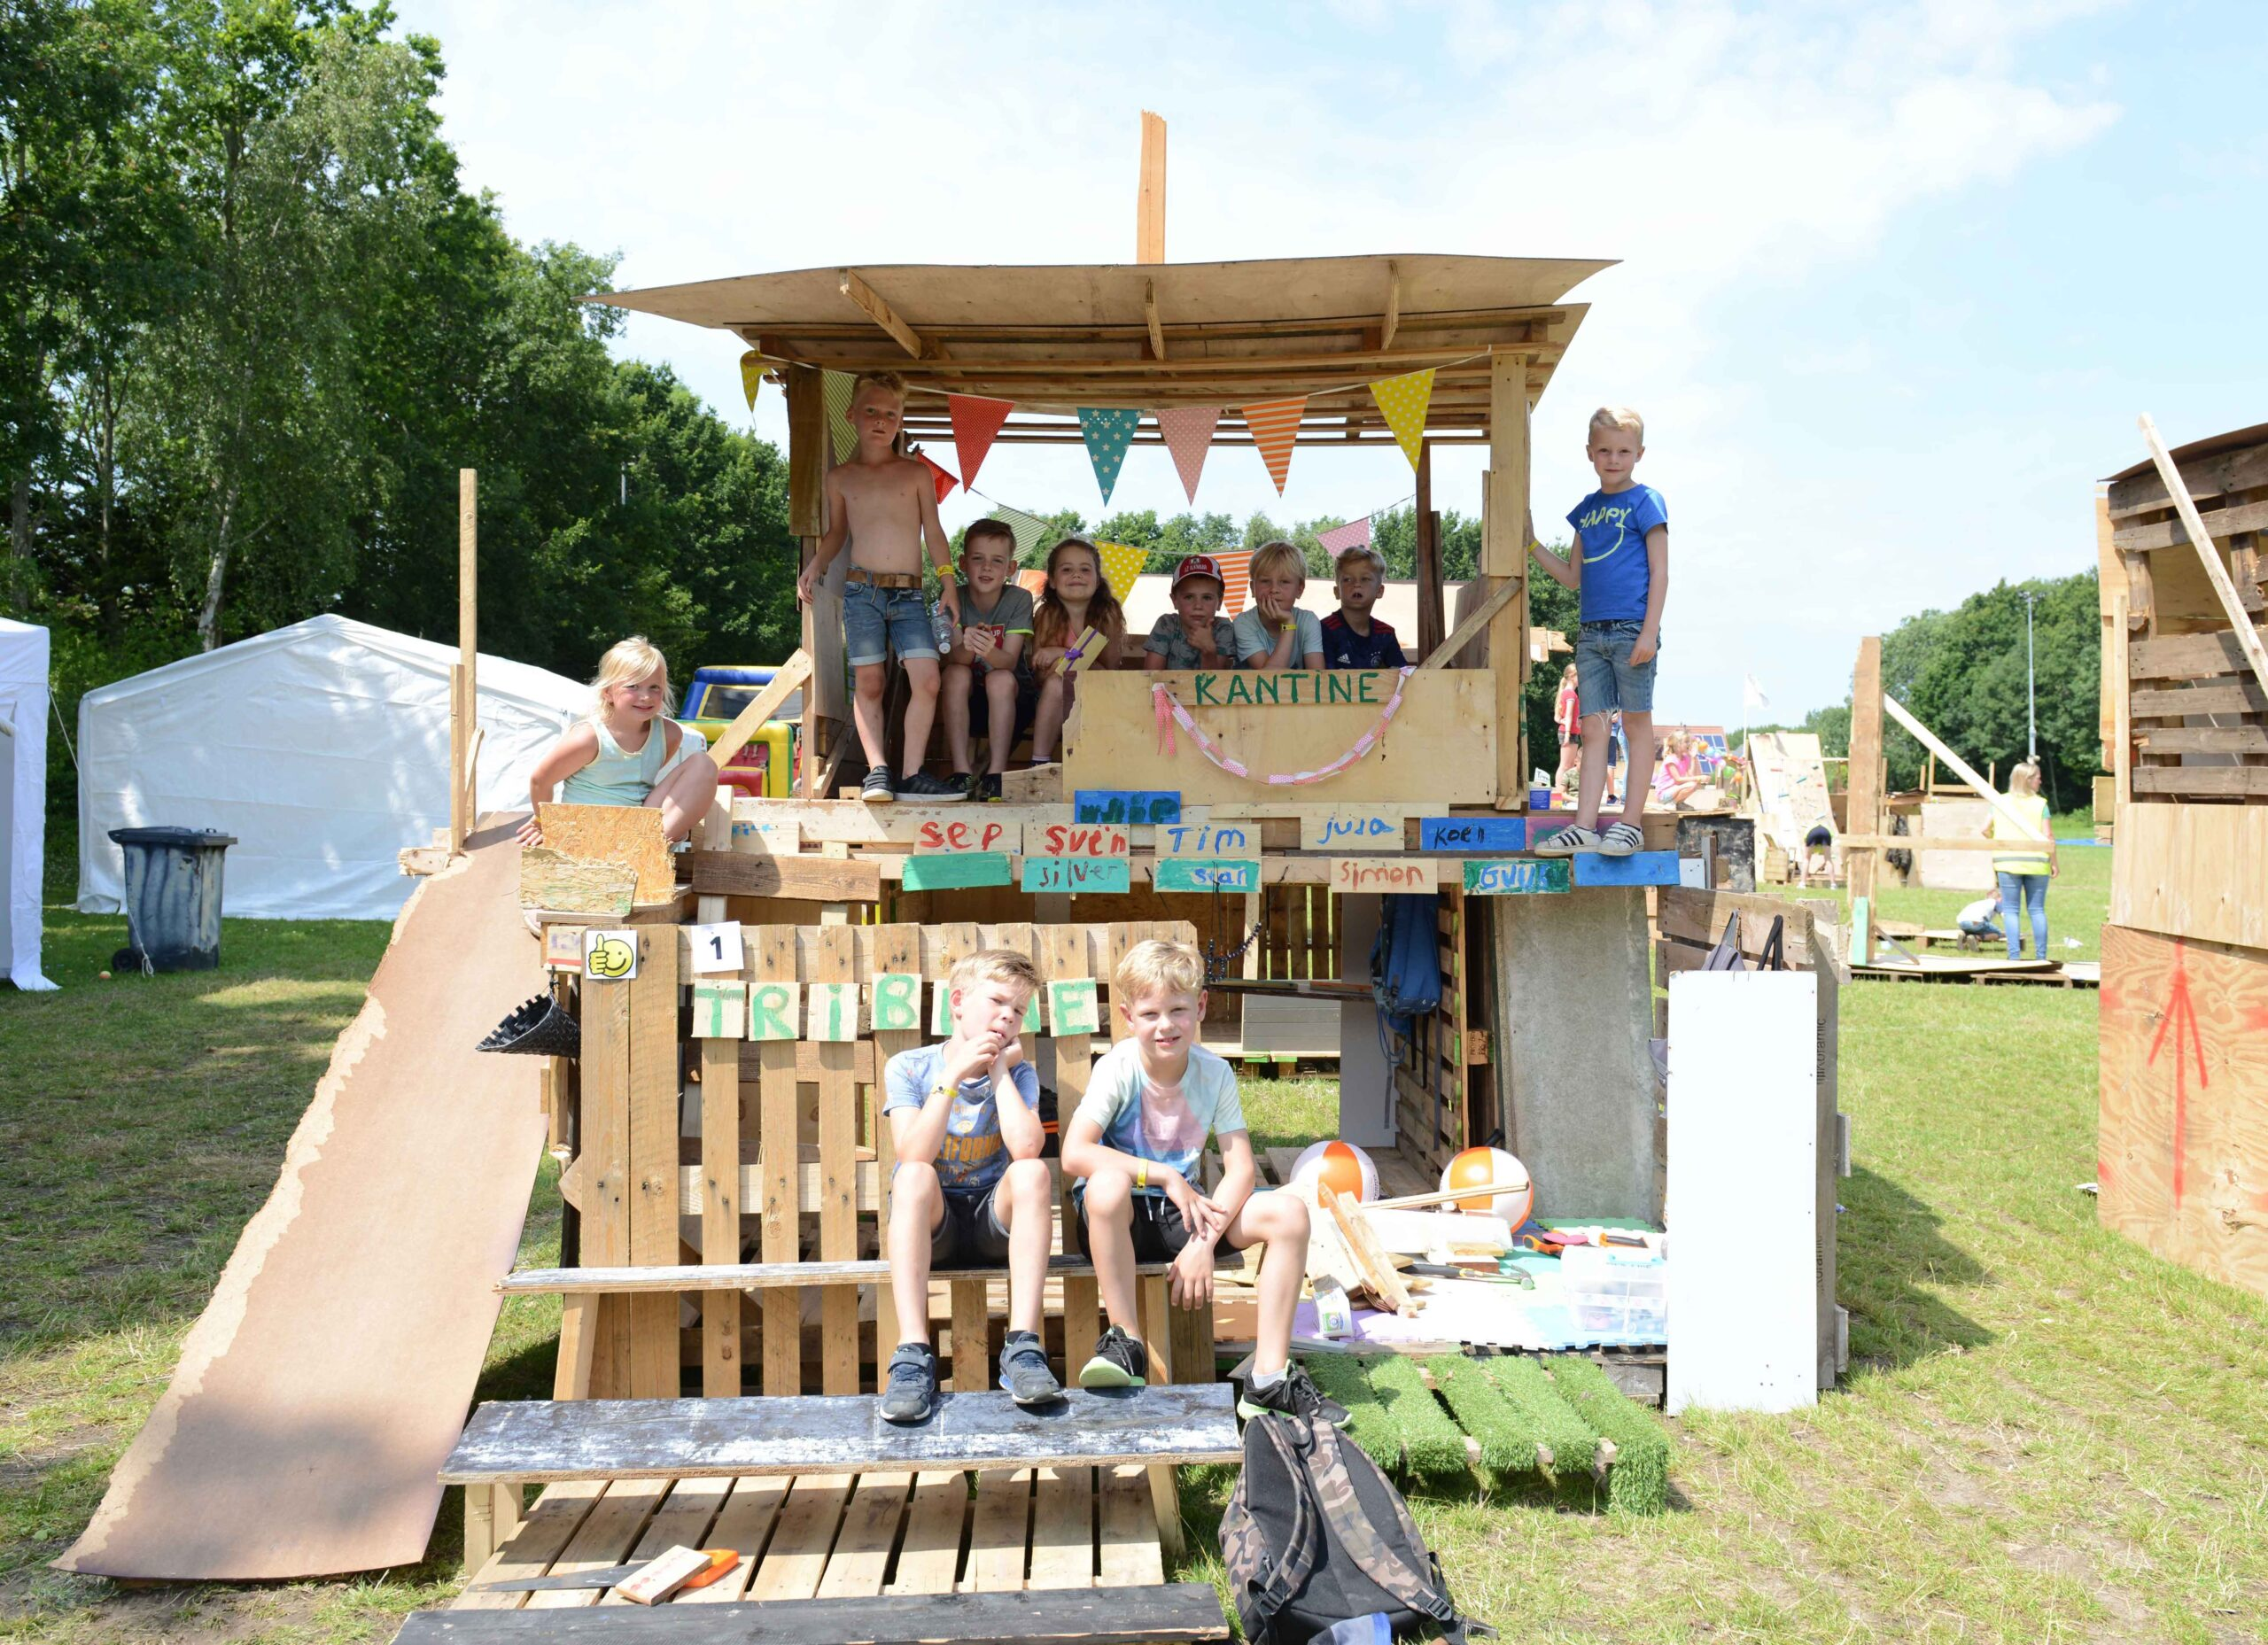 Minecraft for Real - Kinder bauen Haus am Oekopark